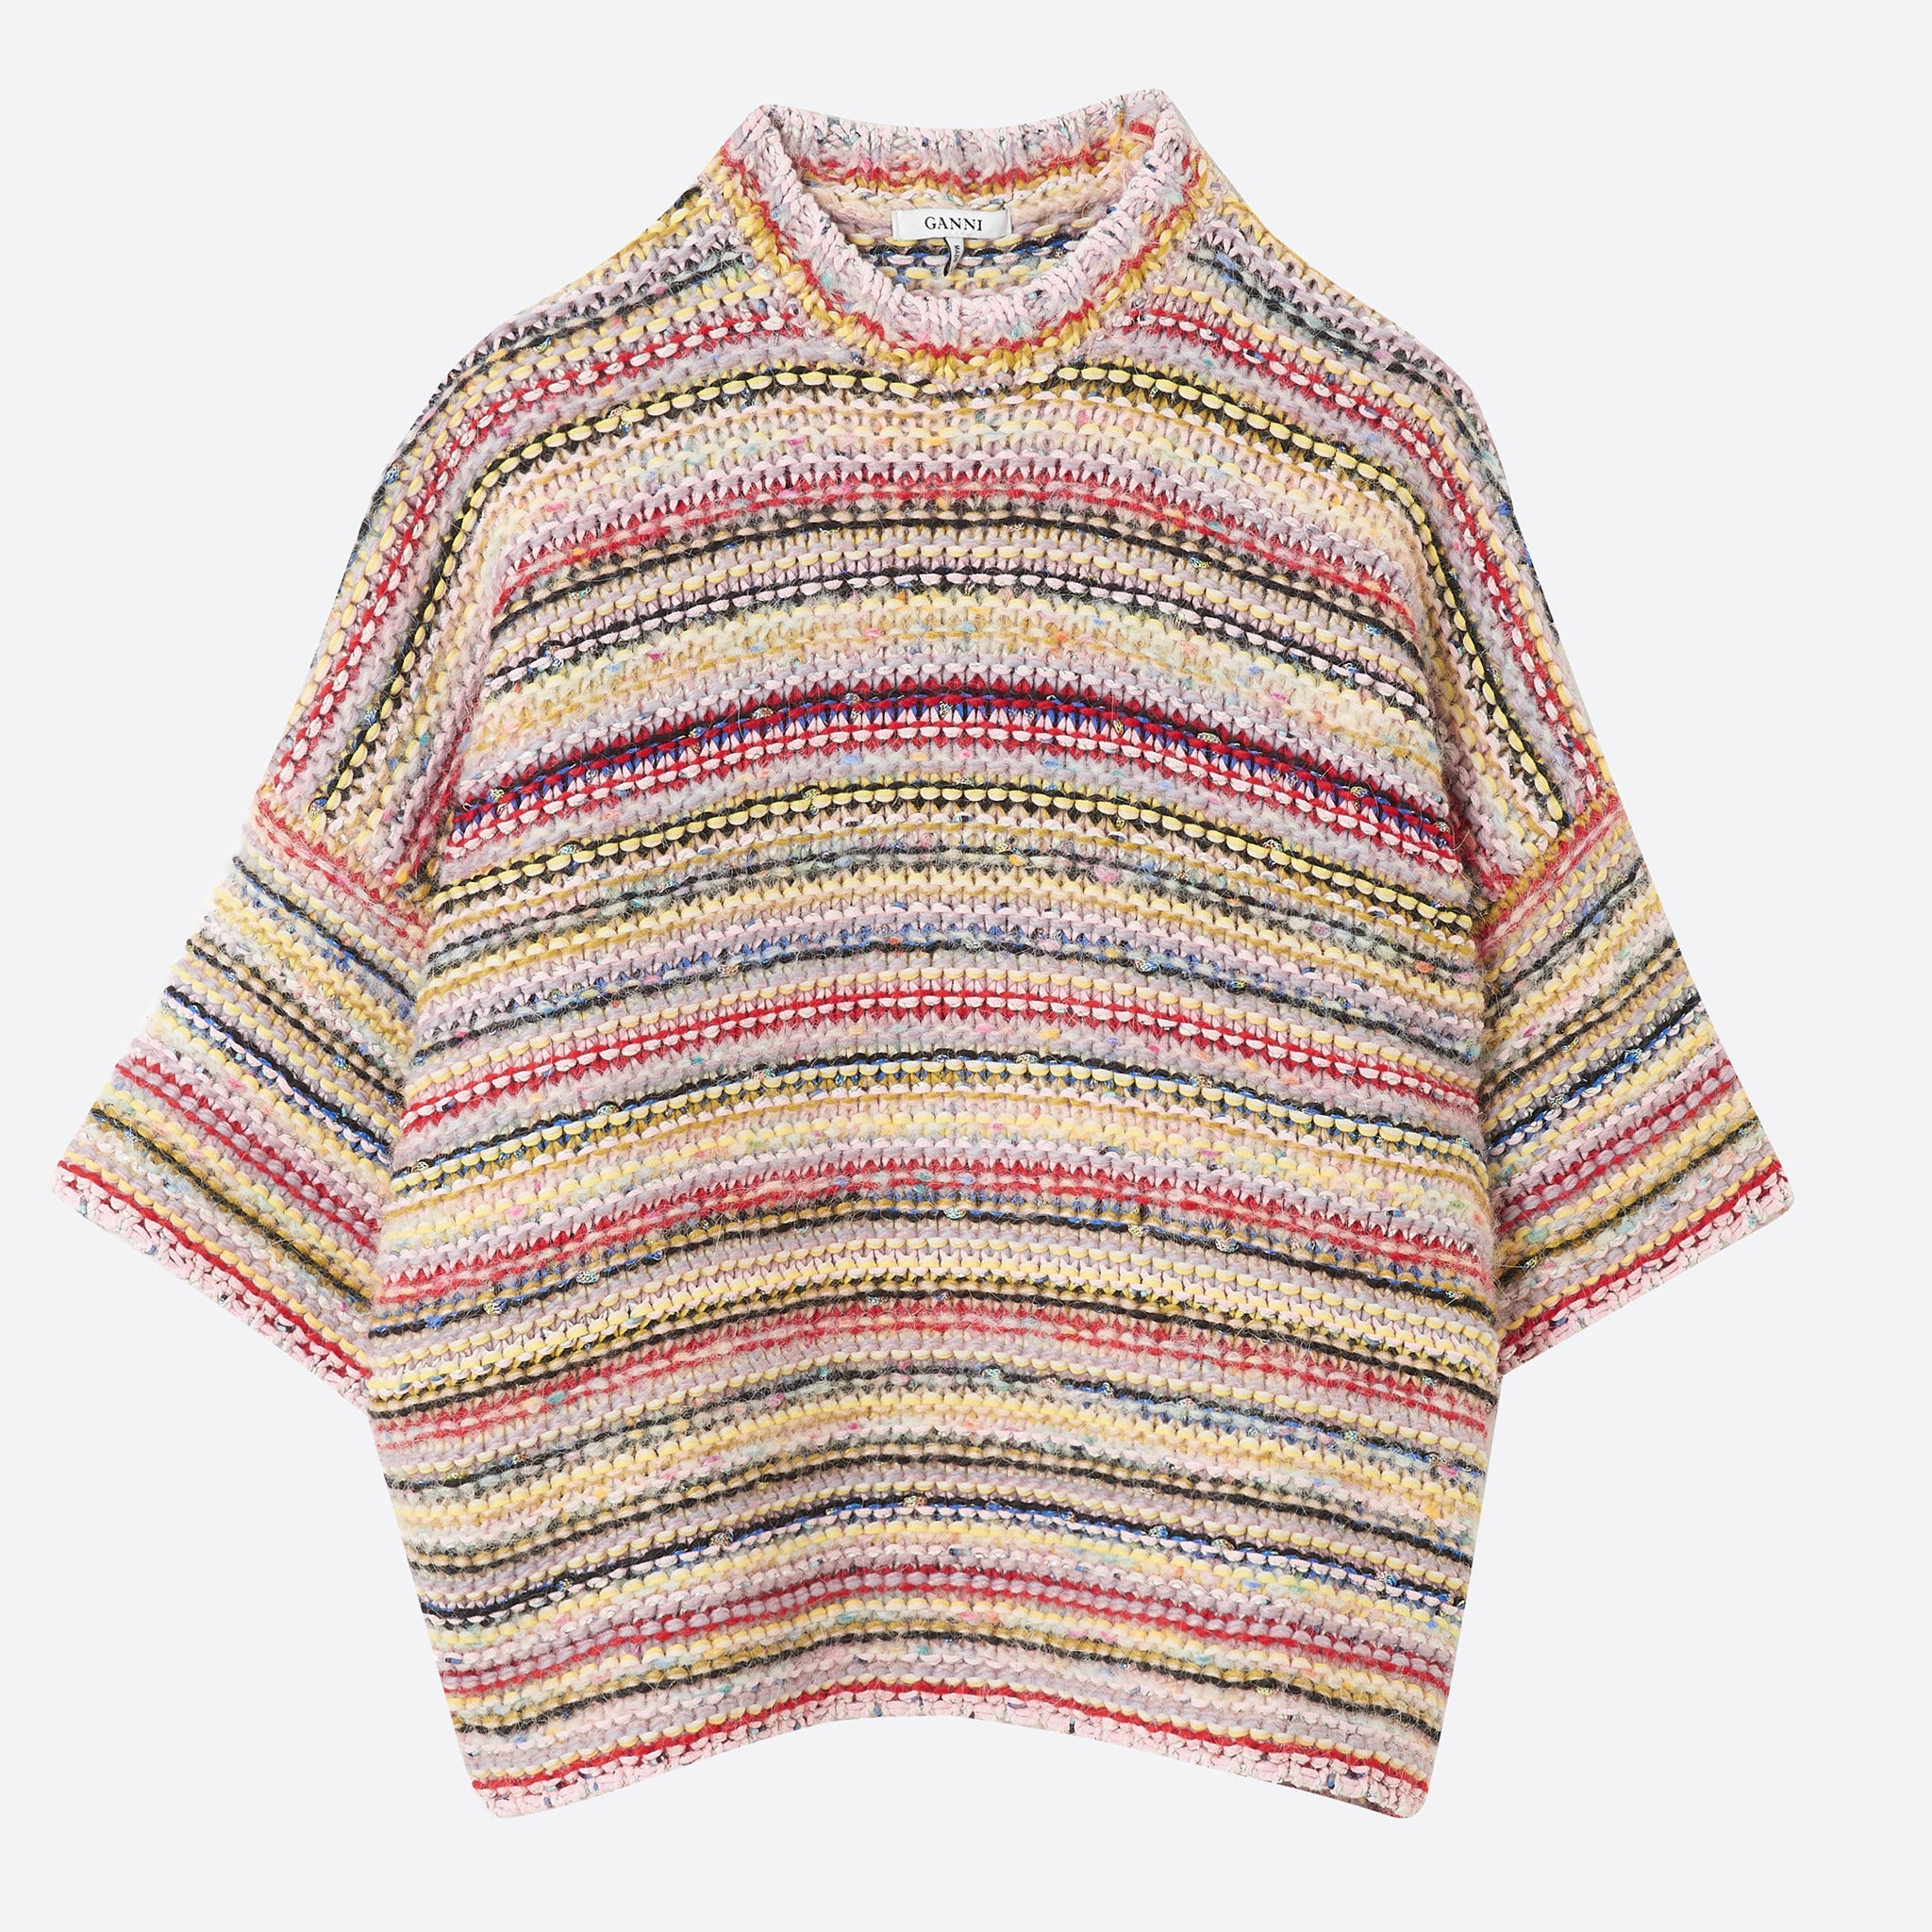 Ganni Brookhaven Mixed Knit Pullover in Multi